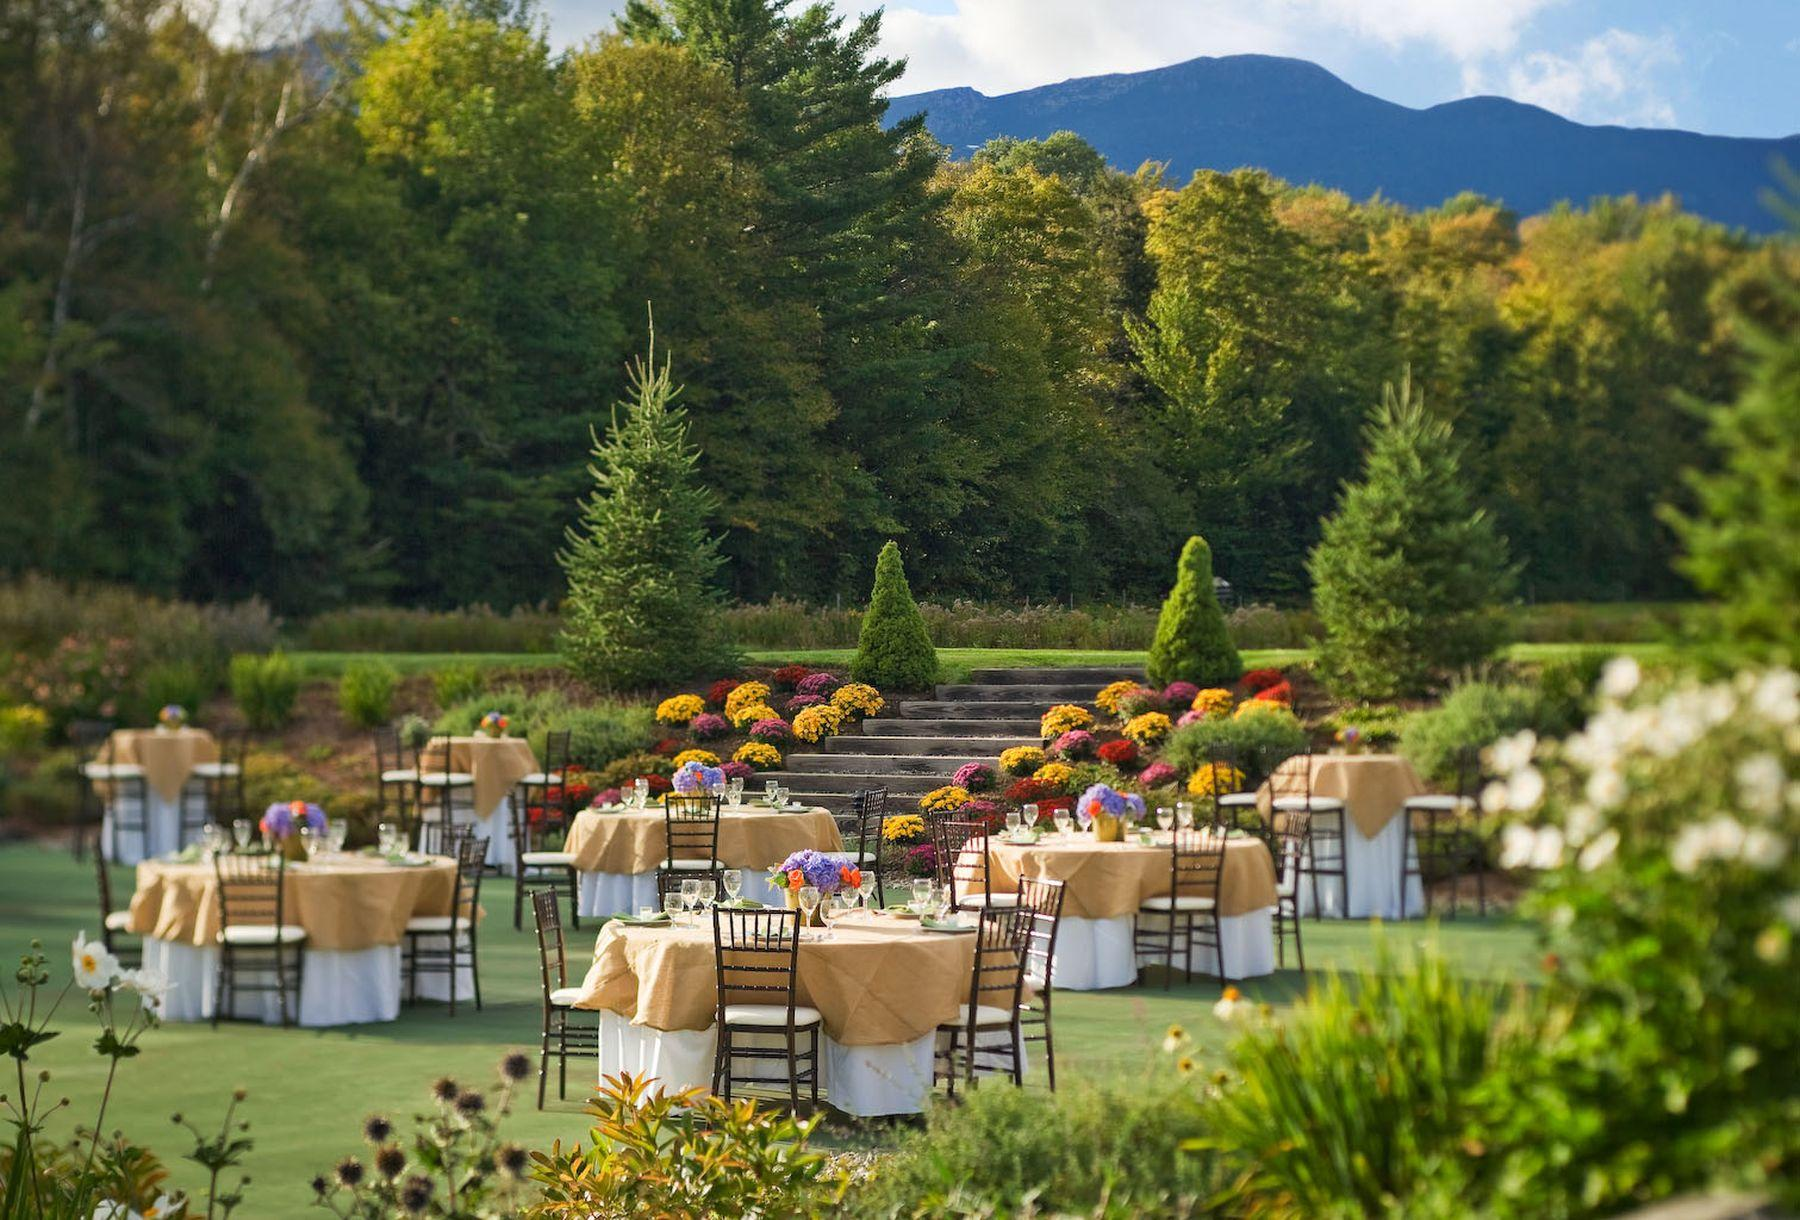 Garden party at an outdoor Vermont venue.